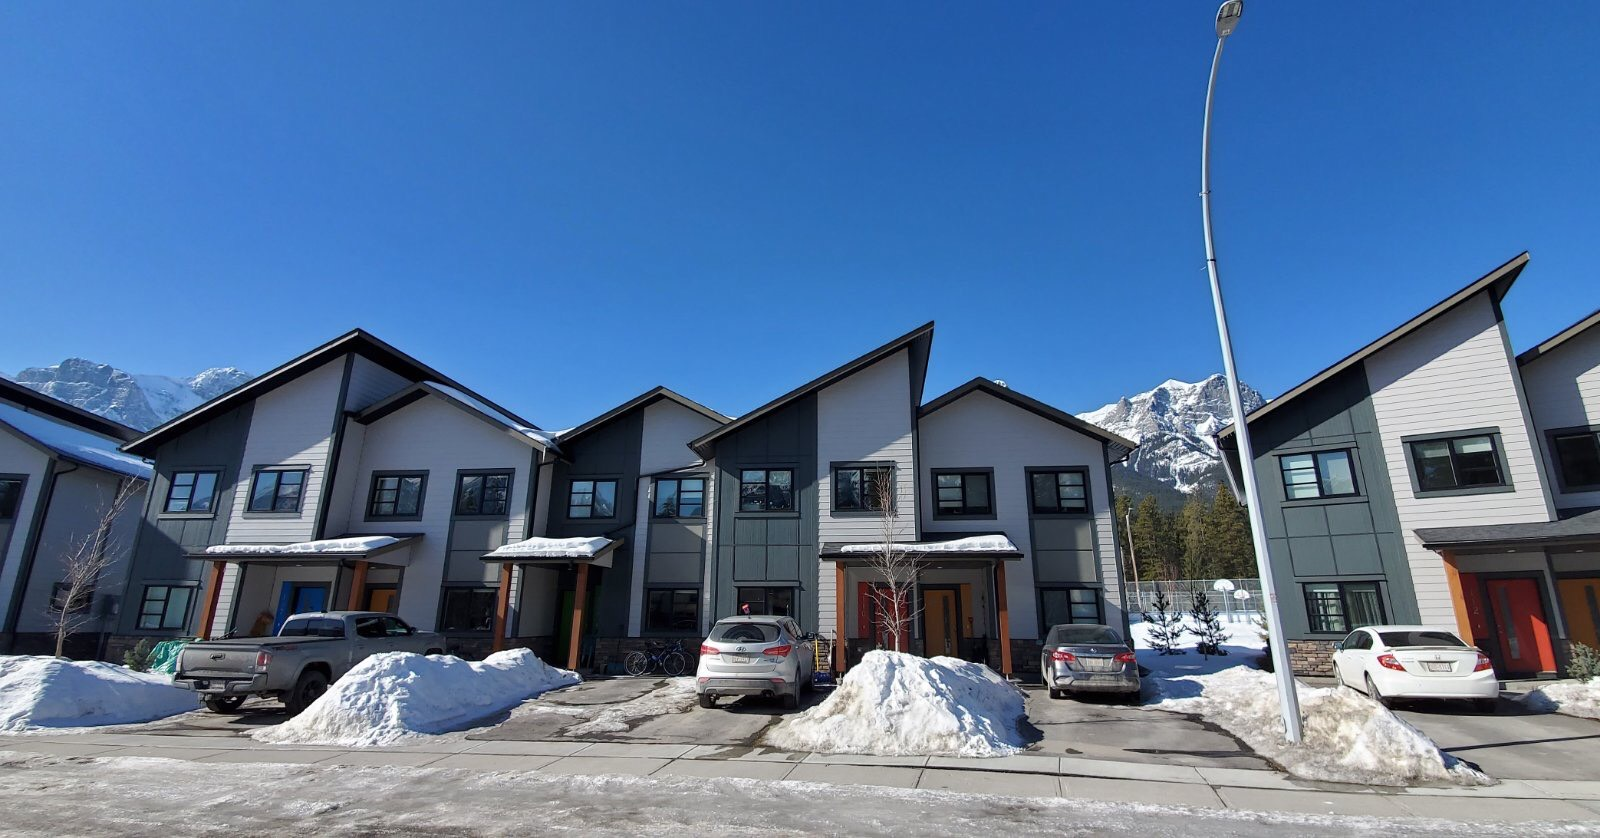 Hardie Siding installation for duplexes in Canmore